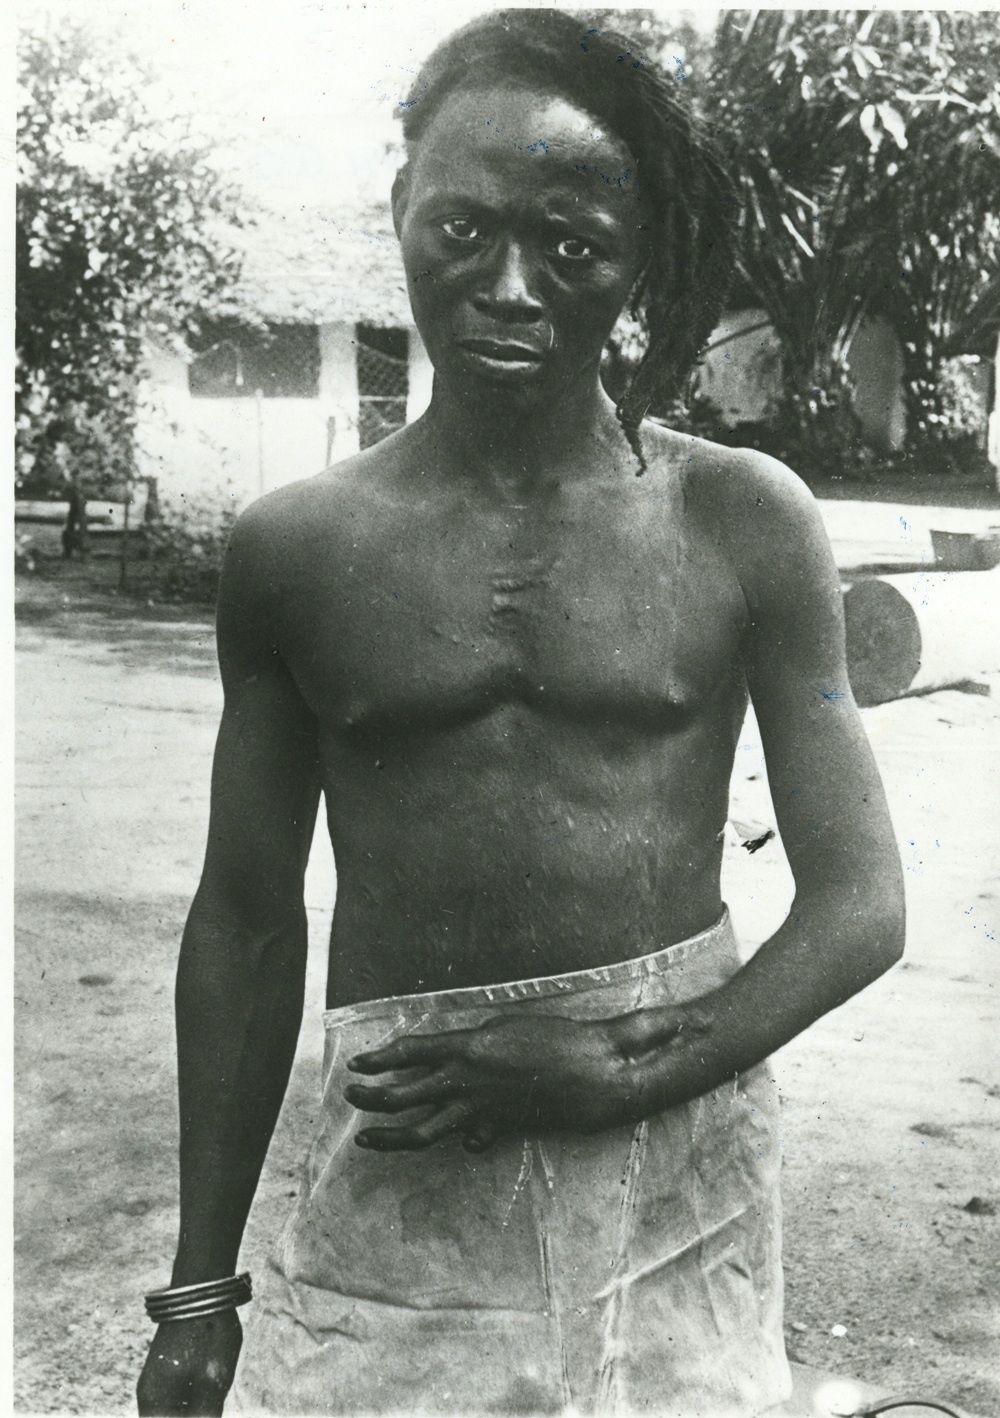 An american dating a congolese man